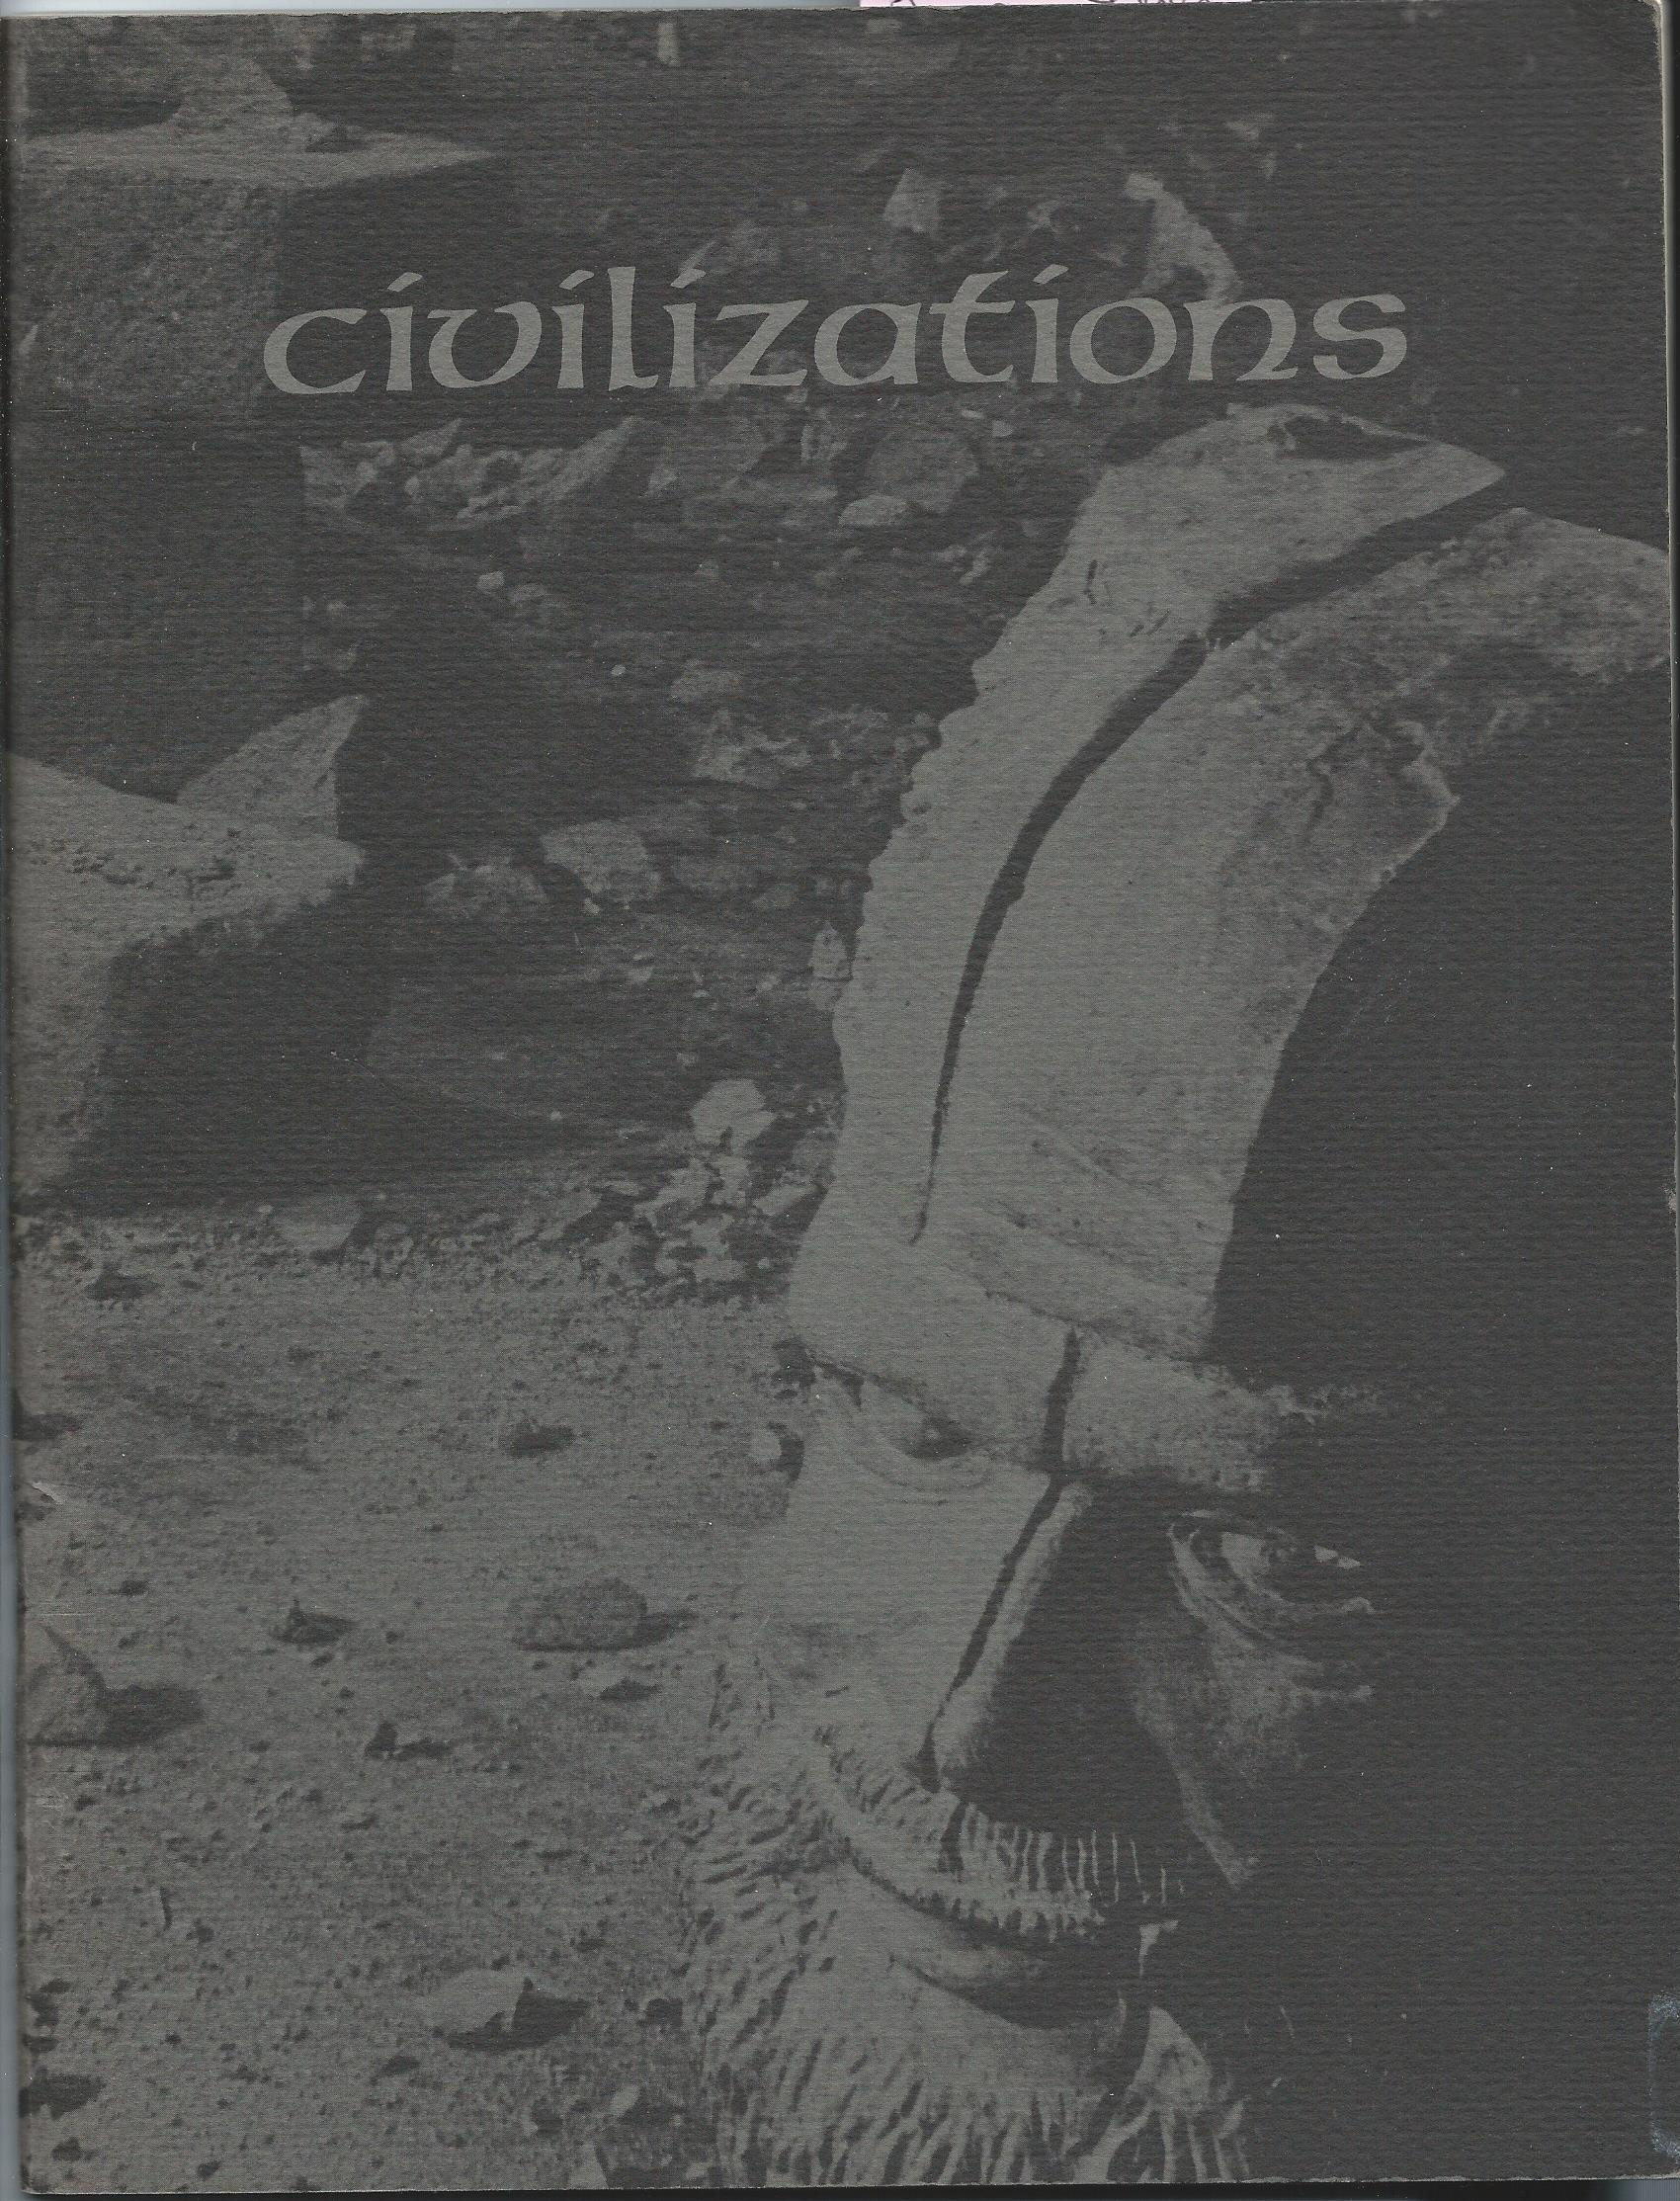 Image for September 11 - October 23, 1977; CIVILIZATIONS